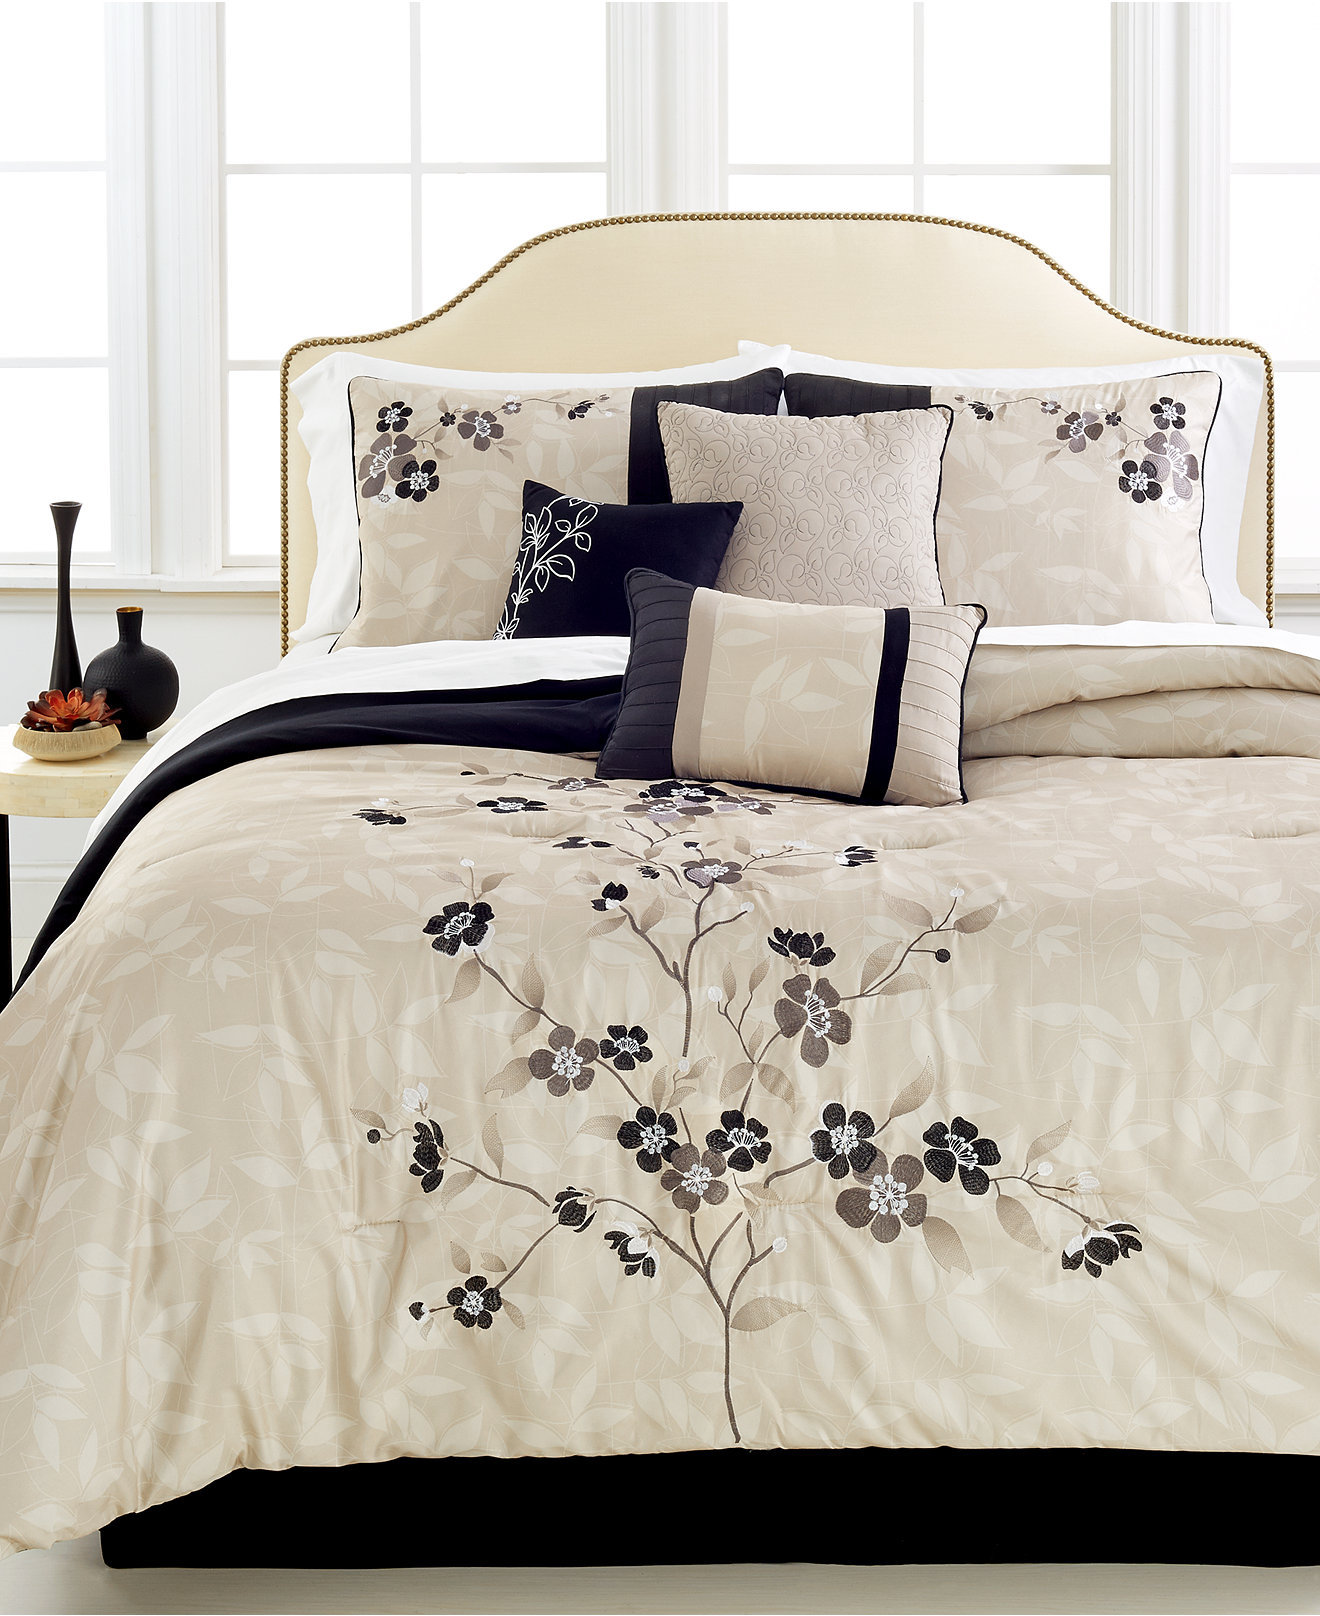 Walmart Bedding Sets Queen | Queen Bedding Sets | Twin Comforters